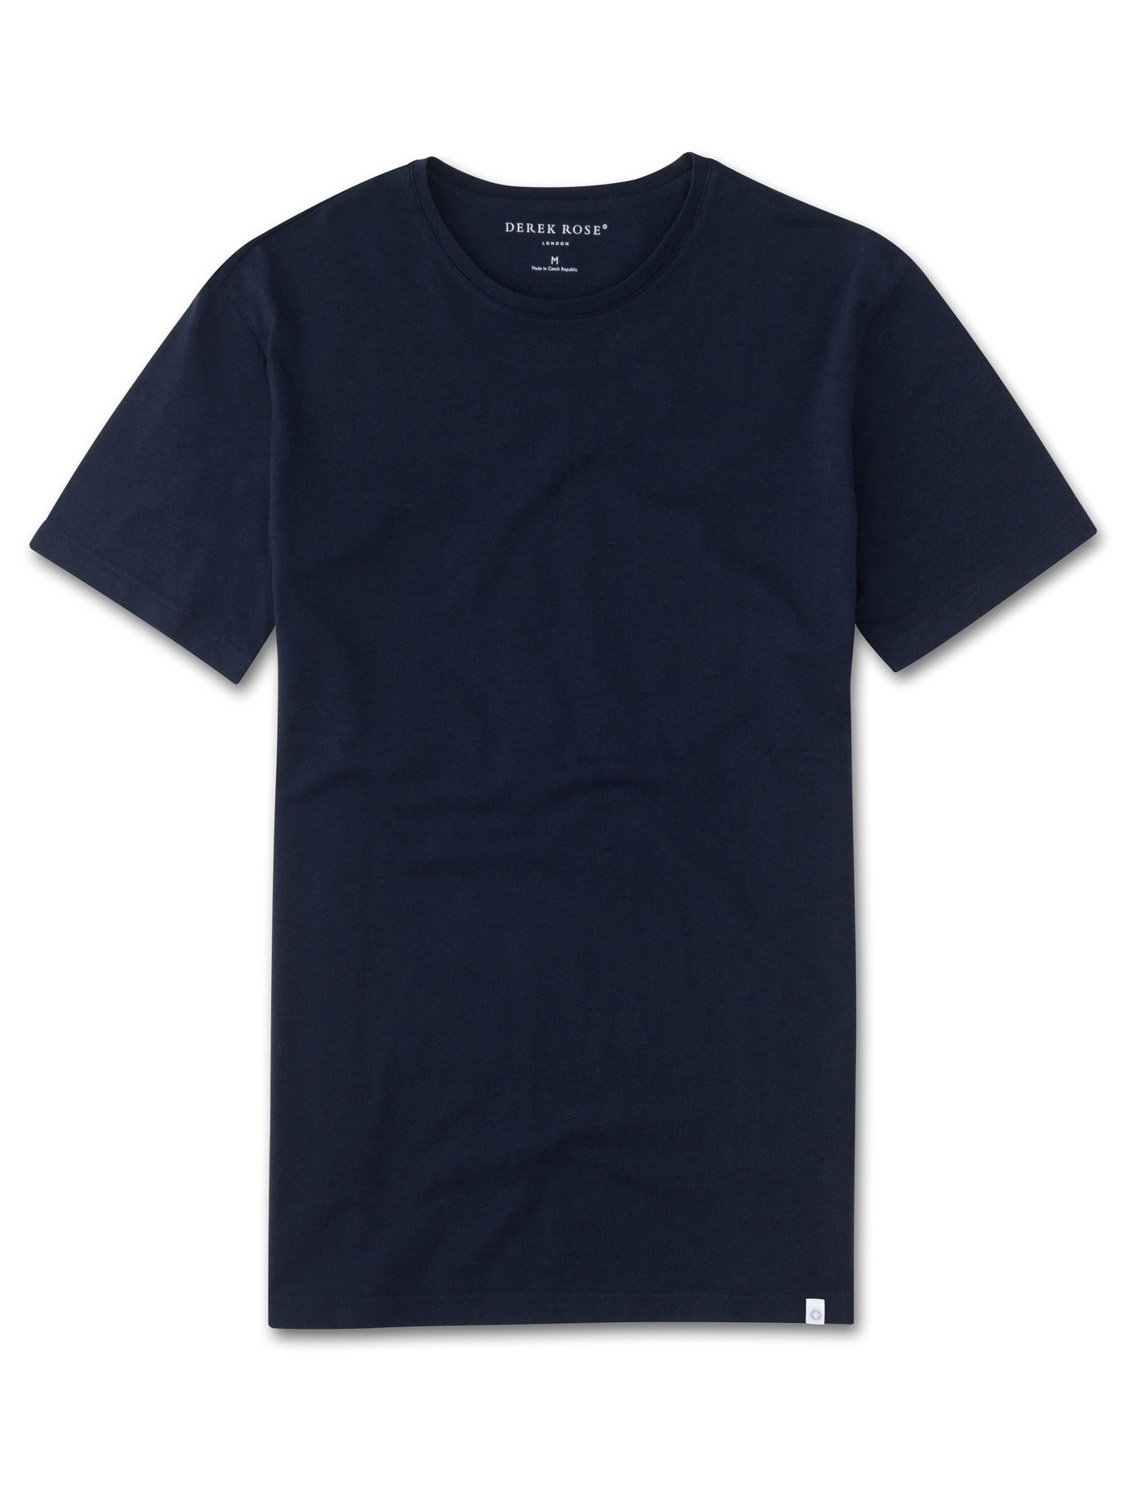 Men's Short Sleeve T-Shirt Turner Carbon-Brushed Cotton Navy